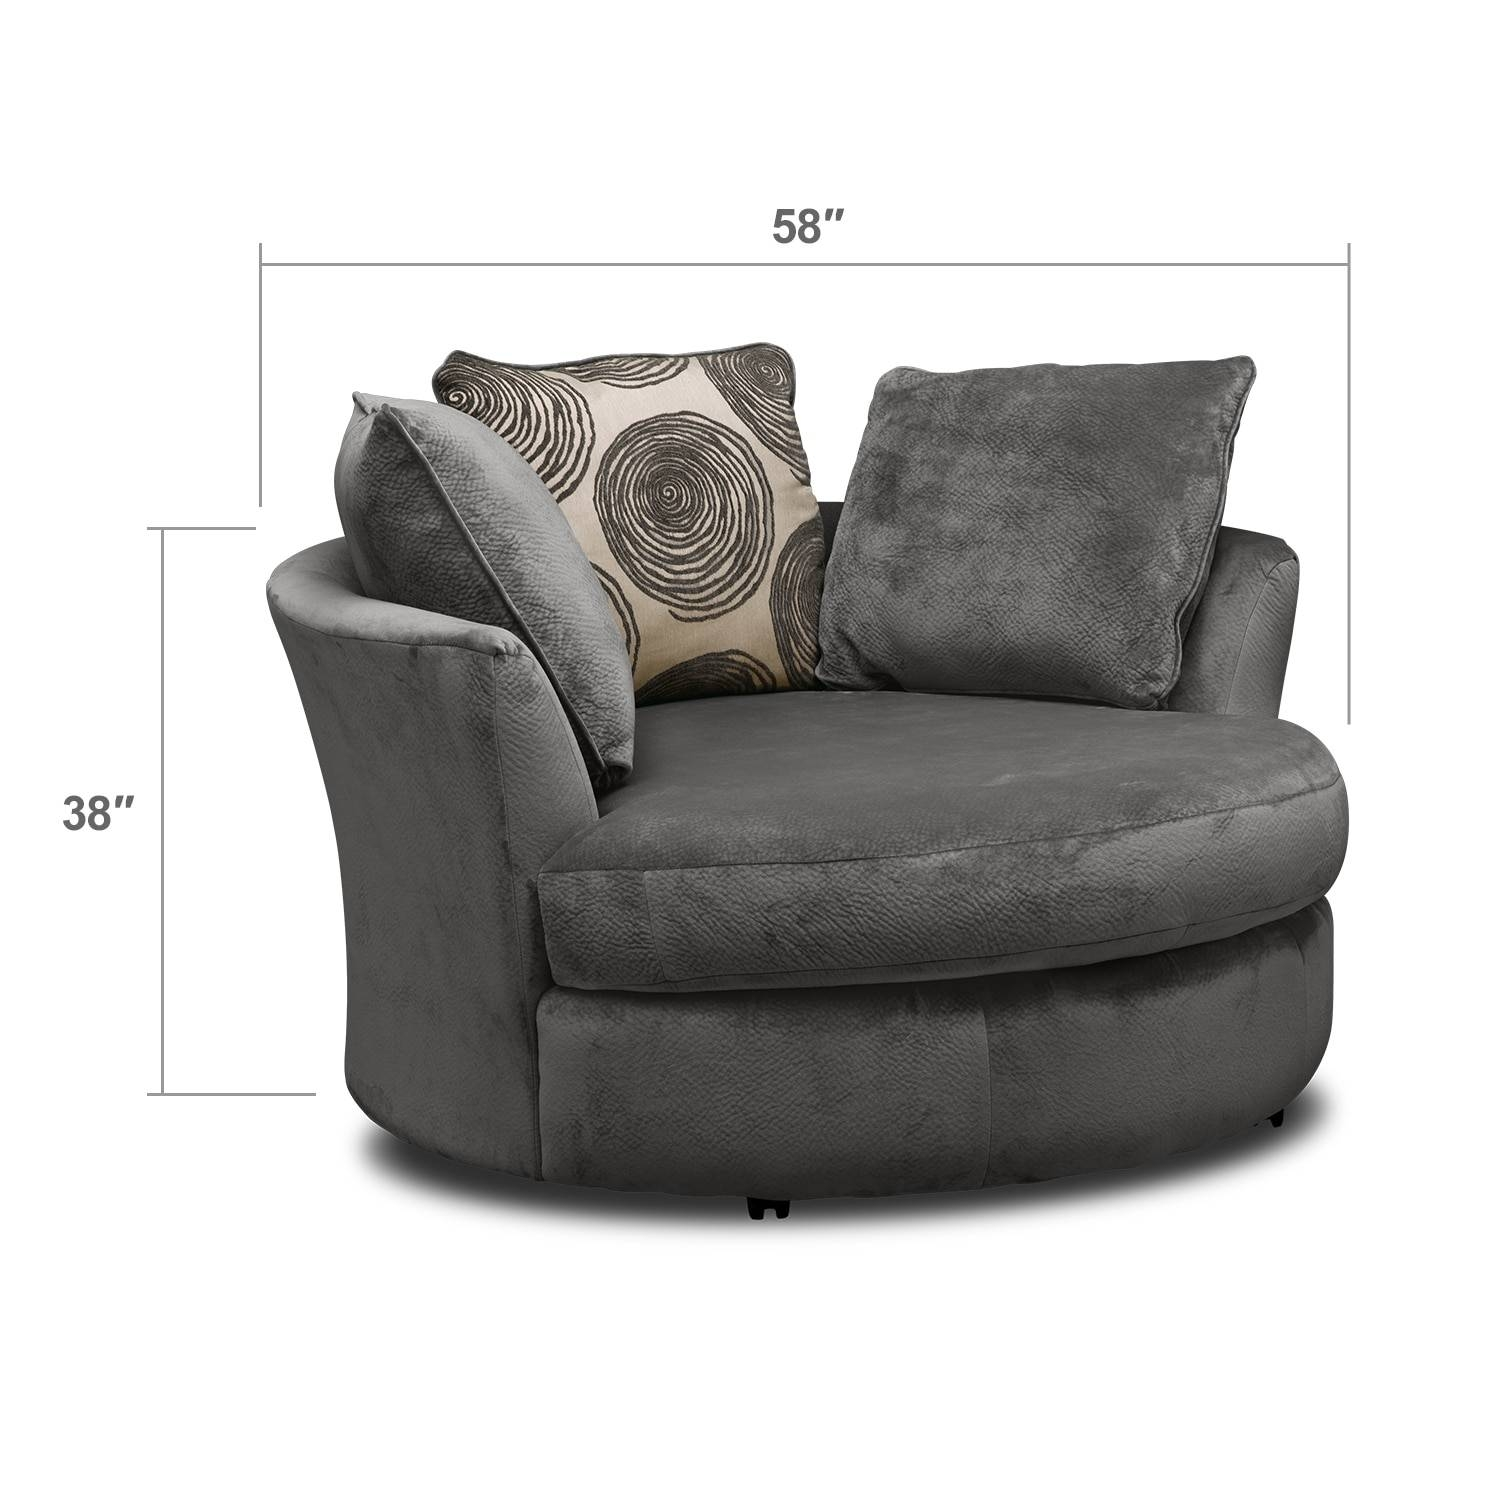 Cordelle Swivel Chair - Gray | American Signature Furniture for Swivel Sofa Chairs (Image 9 of 30)